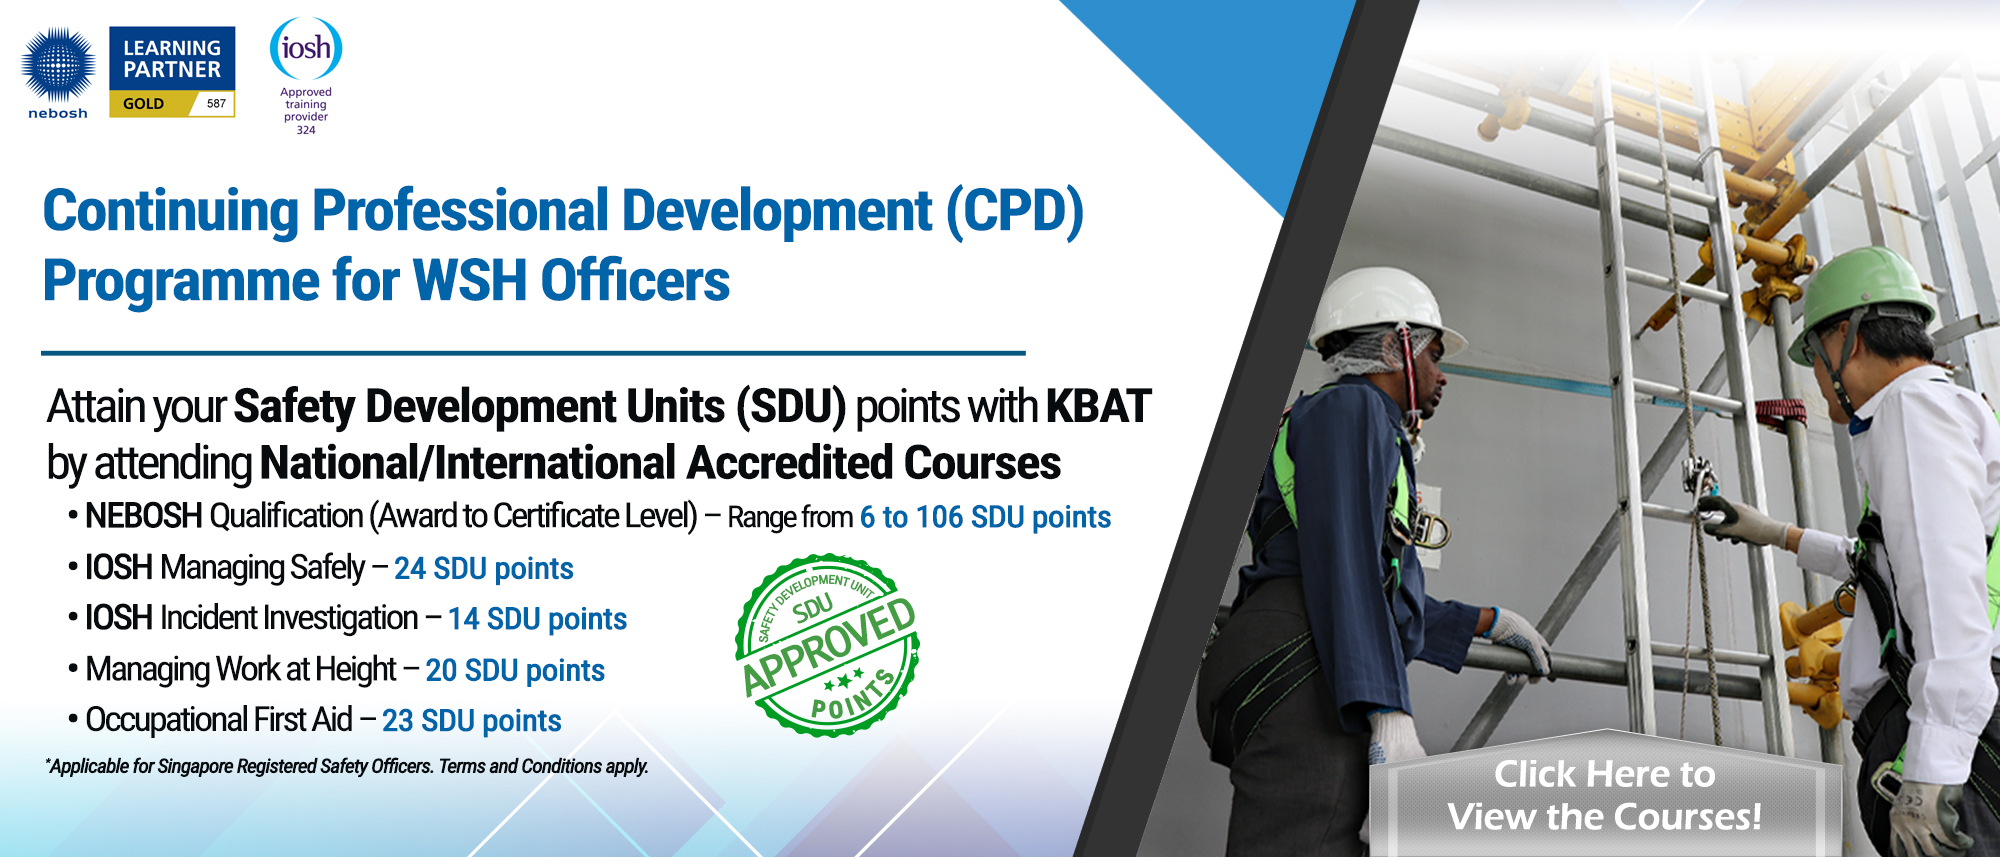 Continuing Professional Development (CPD) Programme for Safety Officers